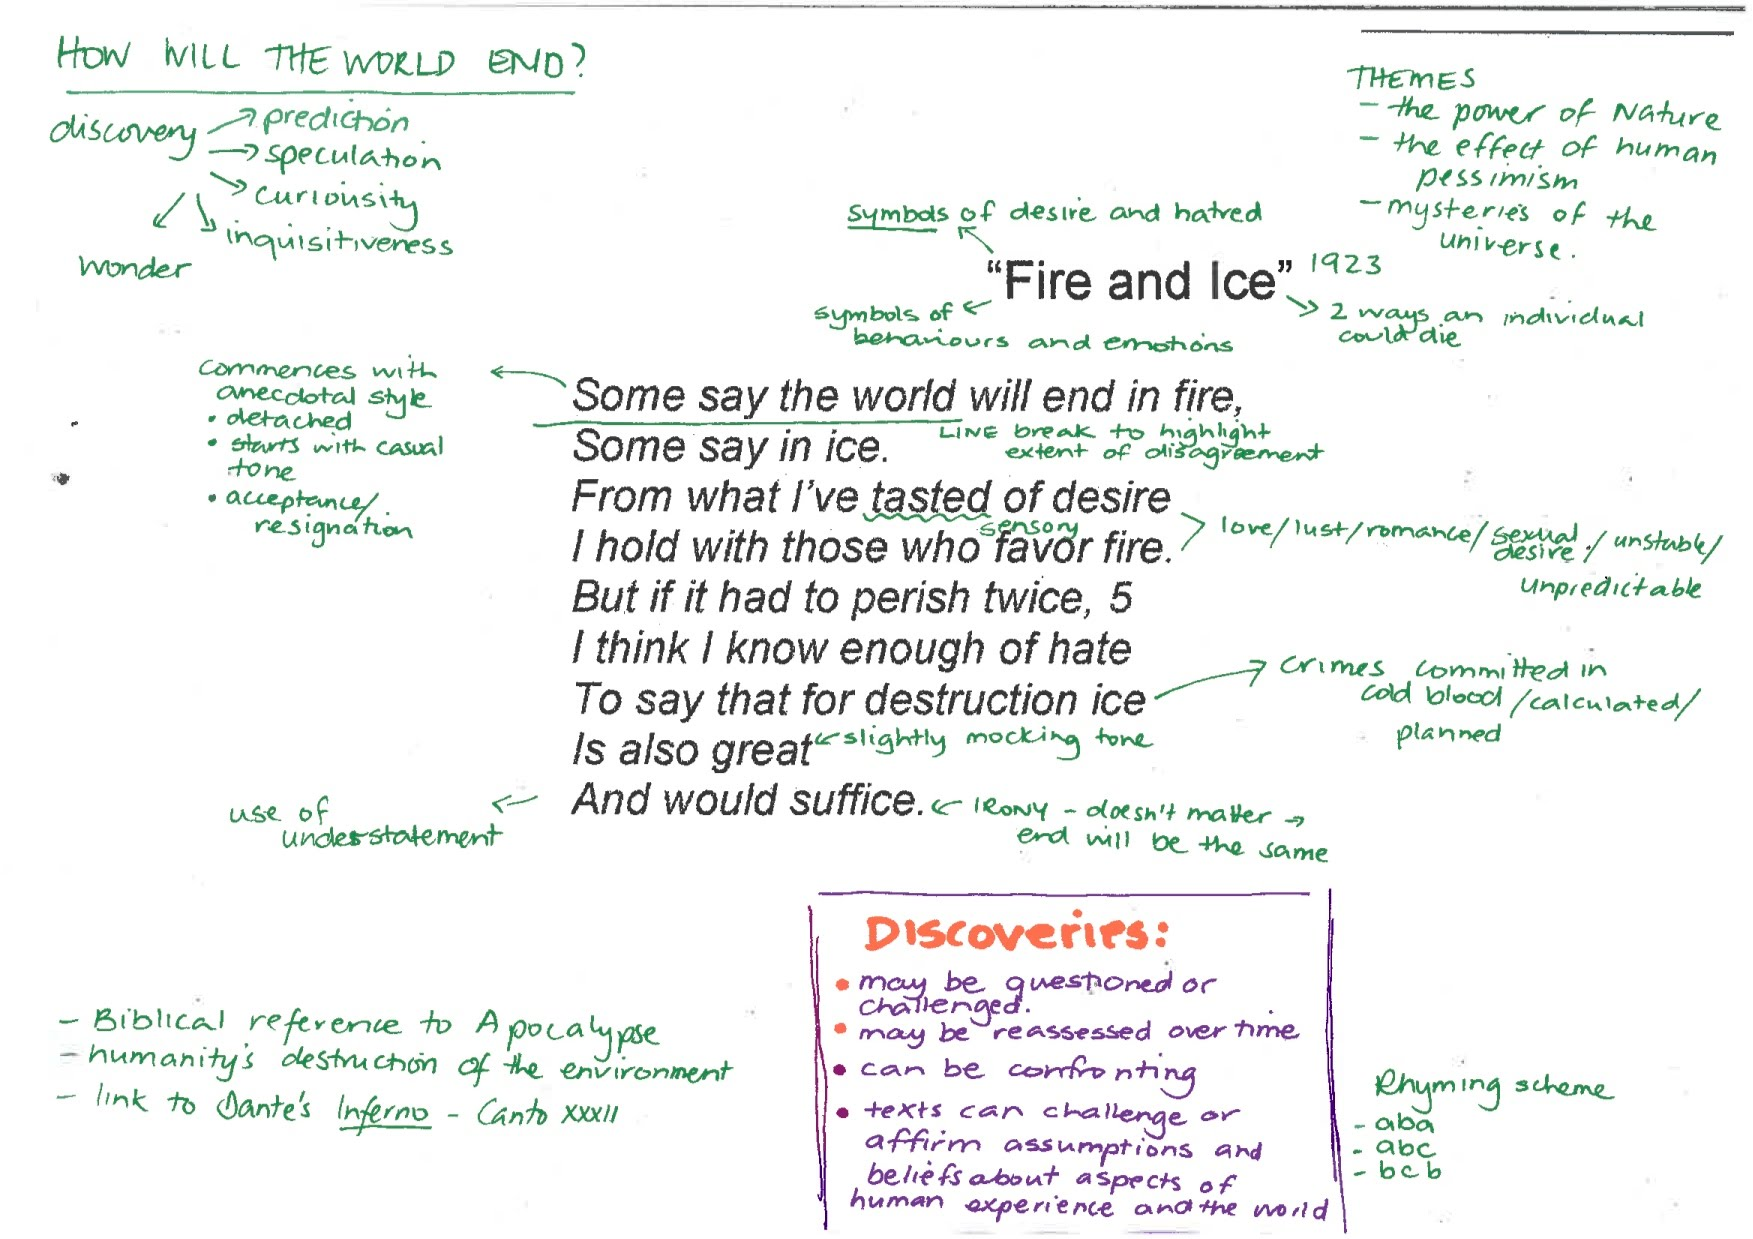 an analysis of the different interpretations in fire and ice by robert frost 2011-7-8  fire and ice by robert frost some say the world will end in fire some say in ice from what i've tasted of desire i hold with those who favor fire.